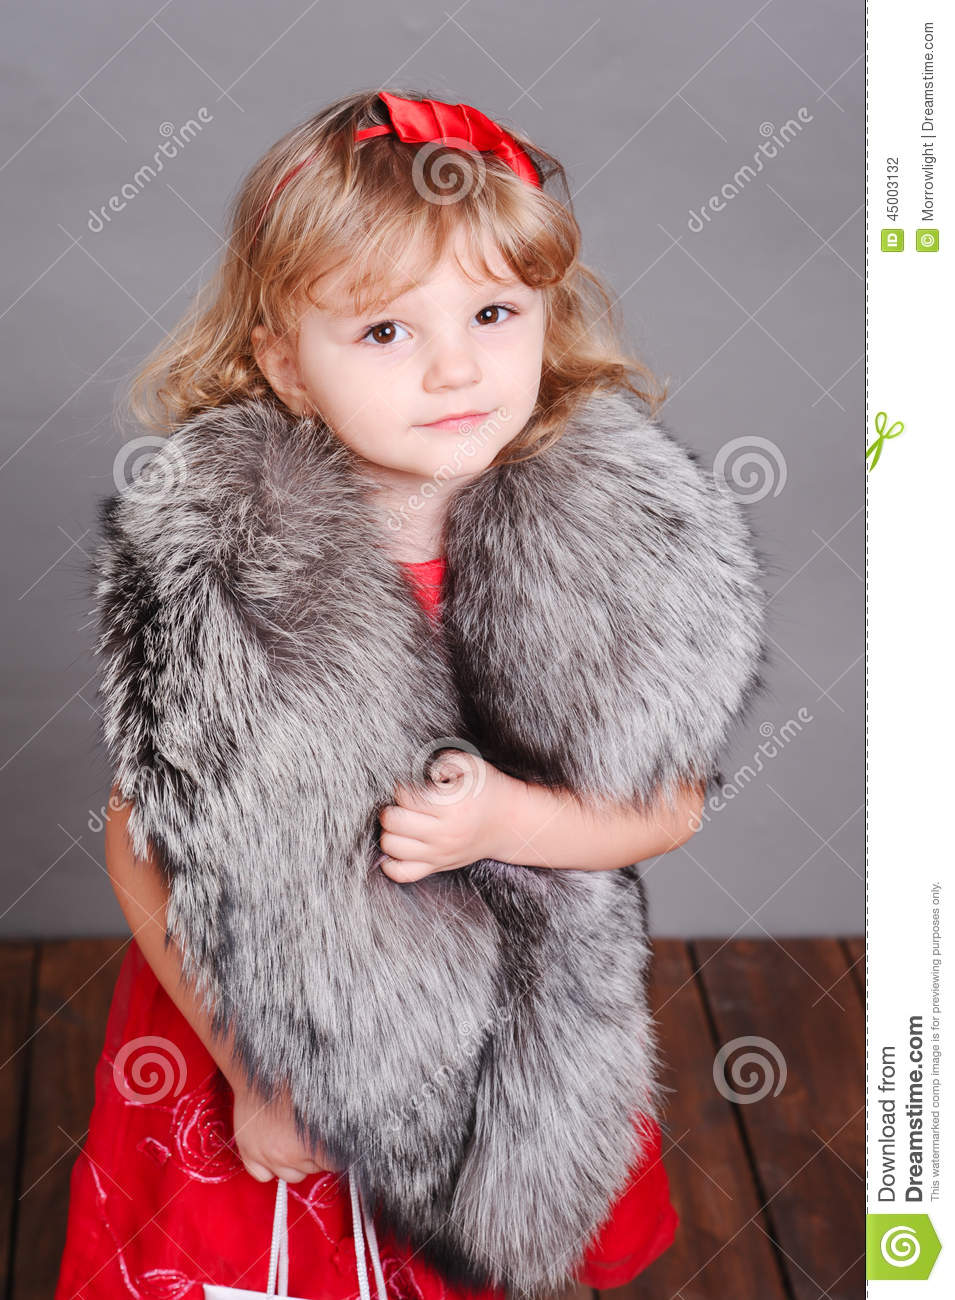 Smiling Little Girl Wearing Stylish Fur Clothes Stock Photo Image